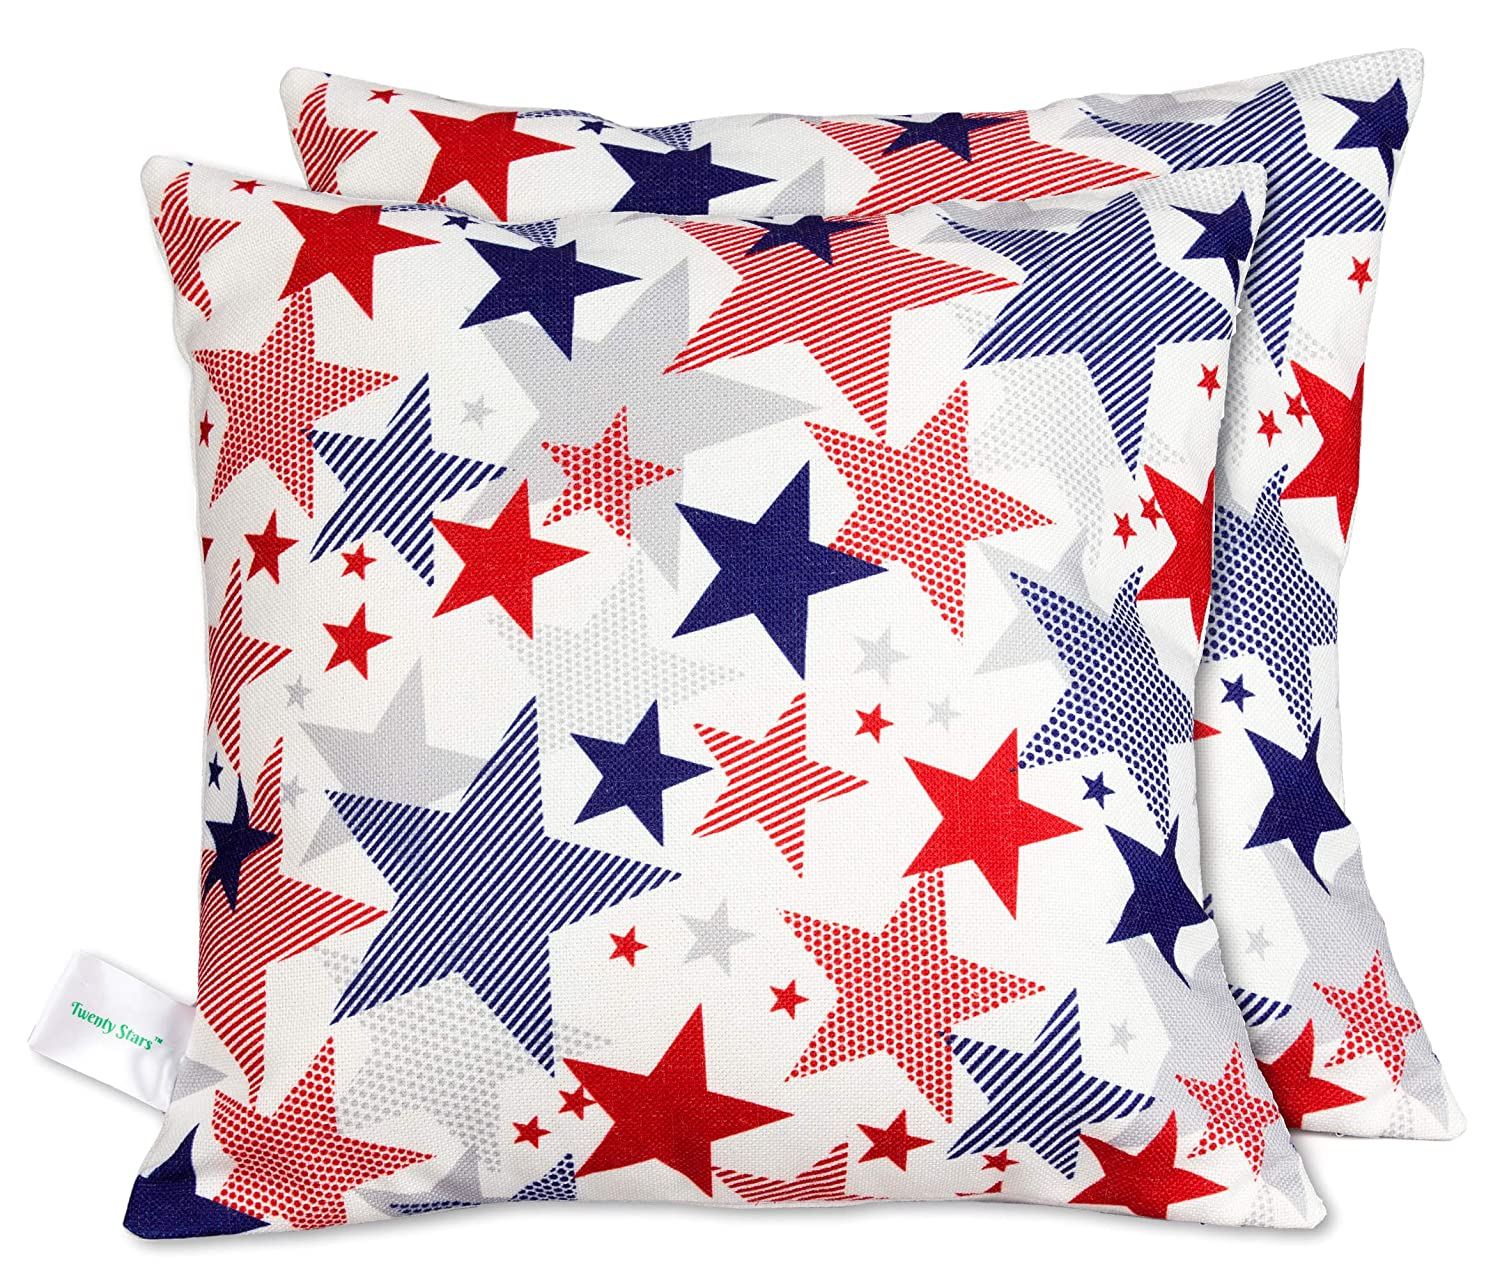 Image of Holiday Pillow Covers, Set of 2